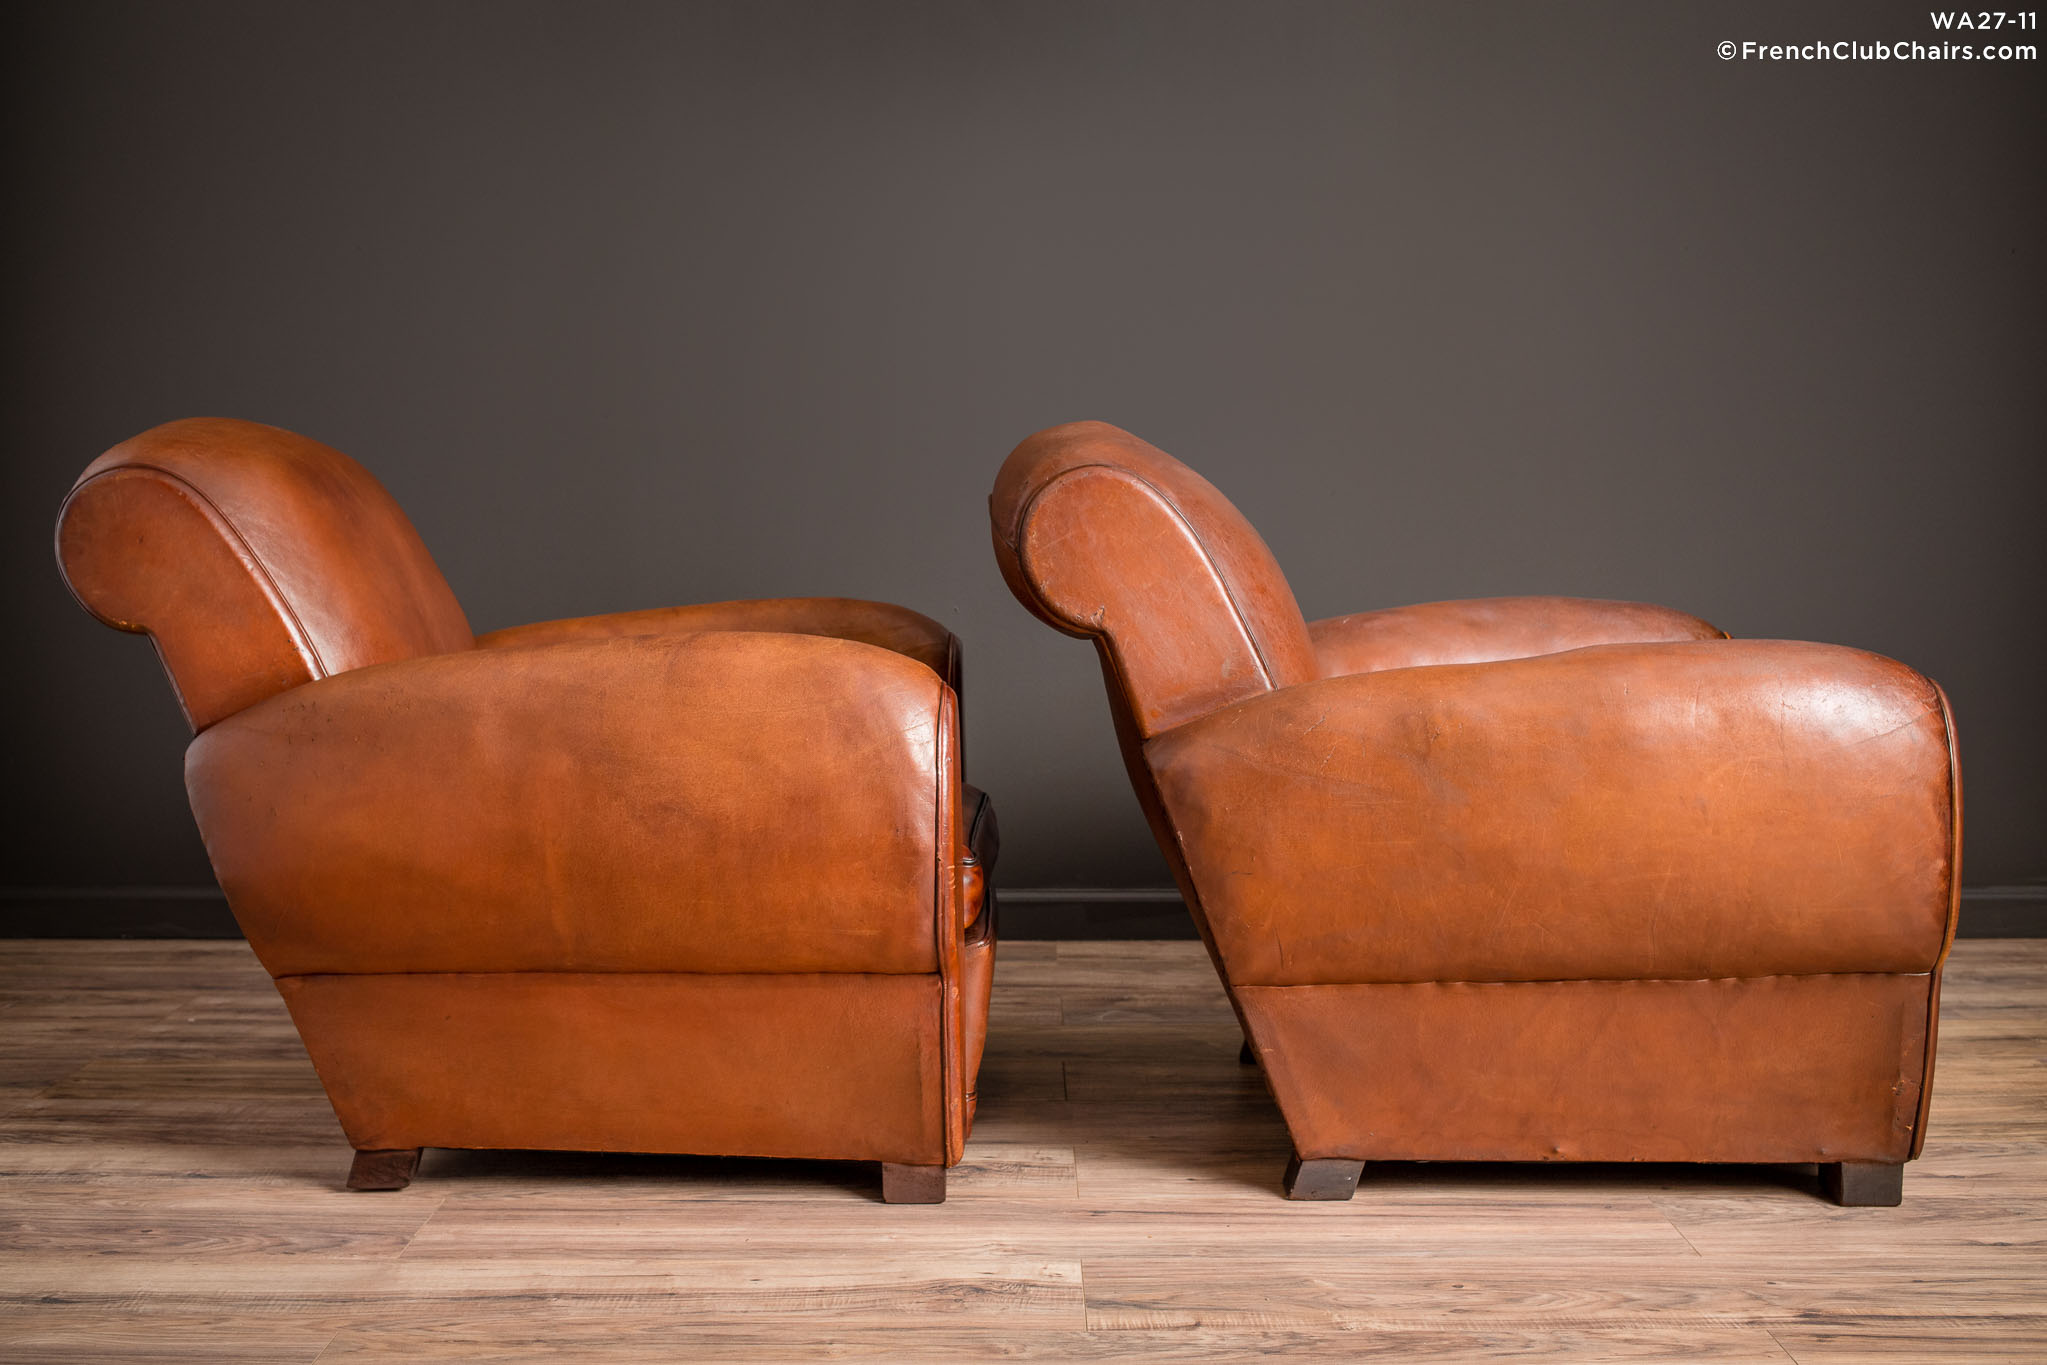 WA_27-11_Chatou_Rollback_Pair_R_3RT-v01-williams-antiks-leather-french-club-chair-wa_fcccom